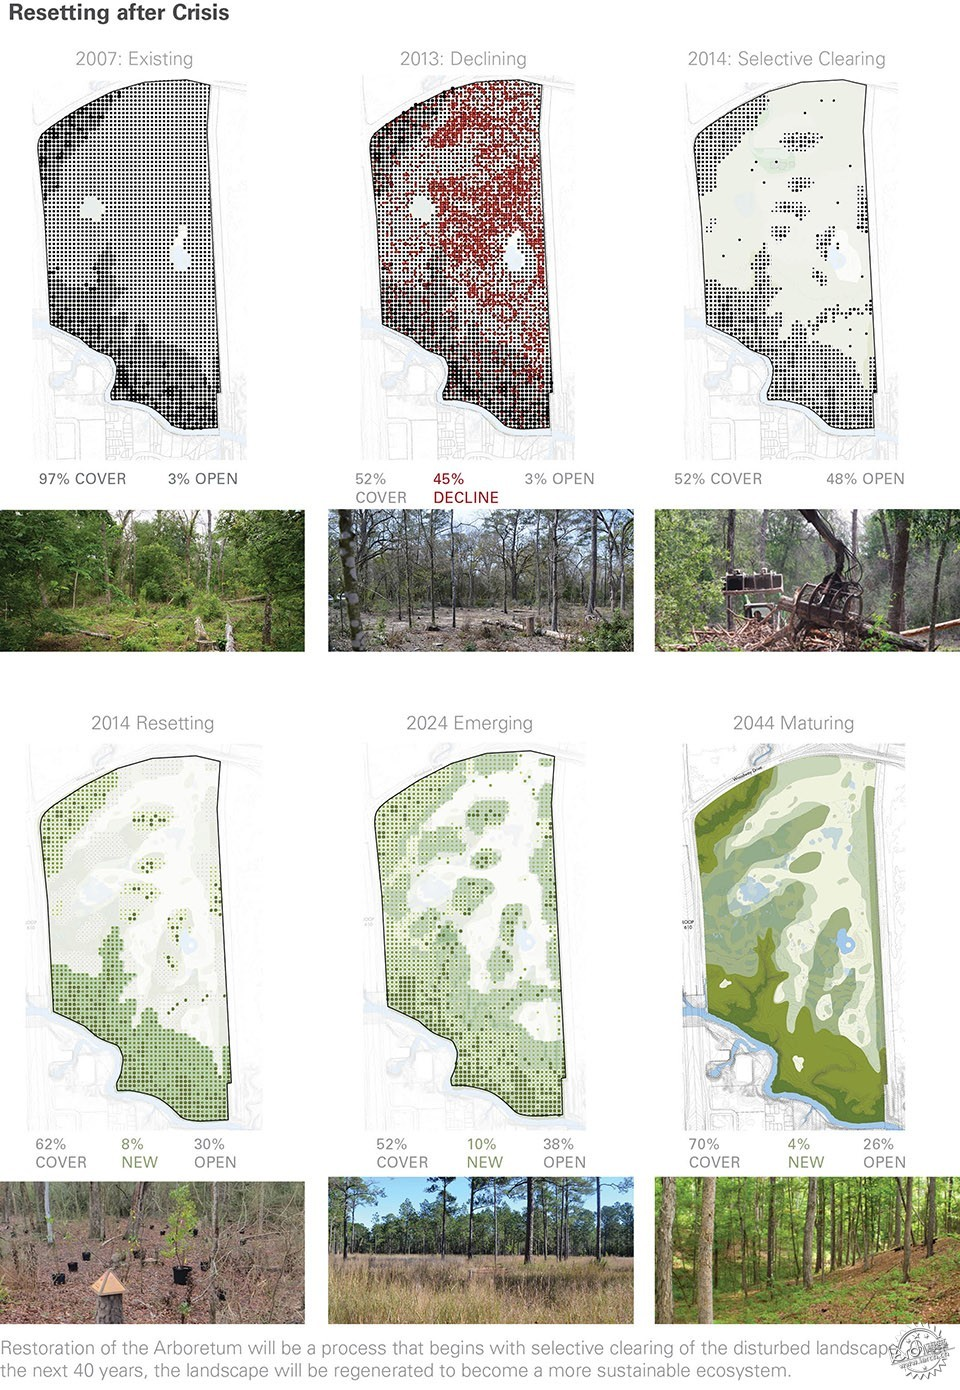 Devastation to Resilience: The Houston Arboretum & Nature Center第7张图片